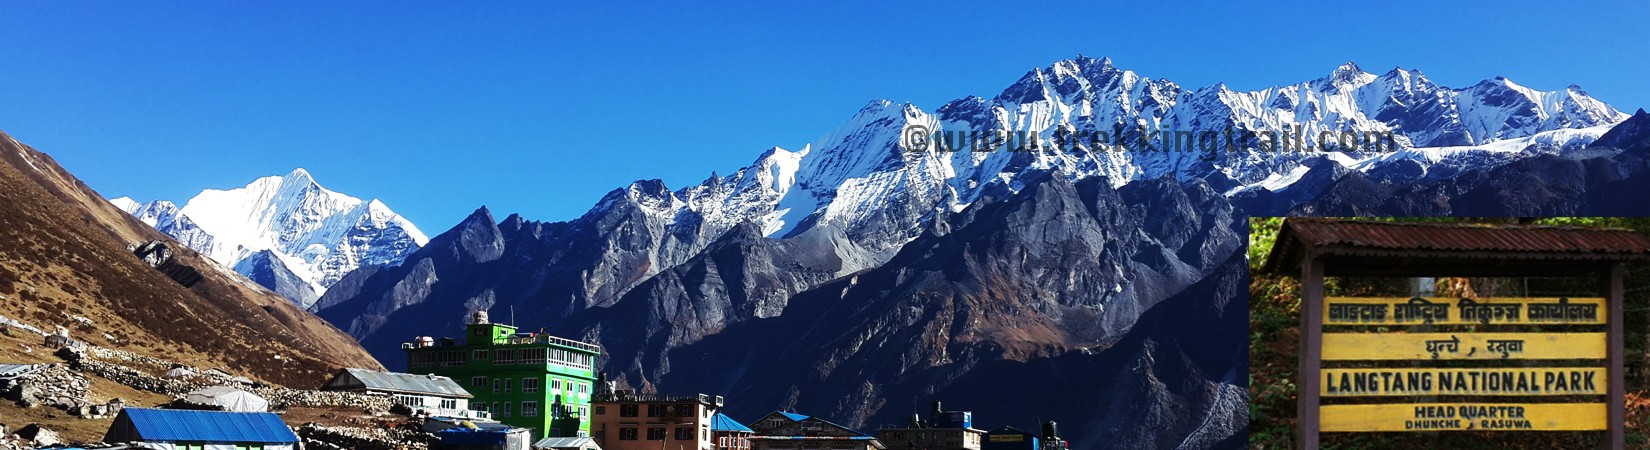 Views of Langtang Himalayas Range From Kyanjin Gompa; Final Destination of Langtang Valley Trekking